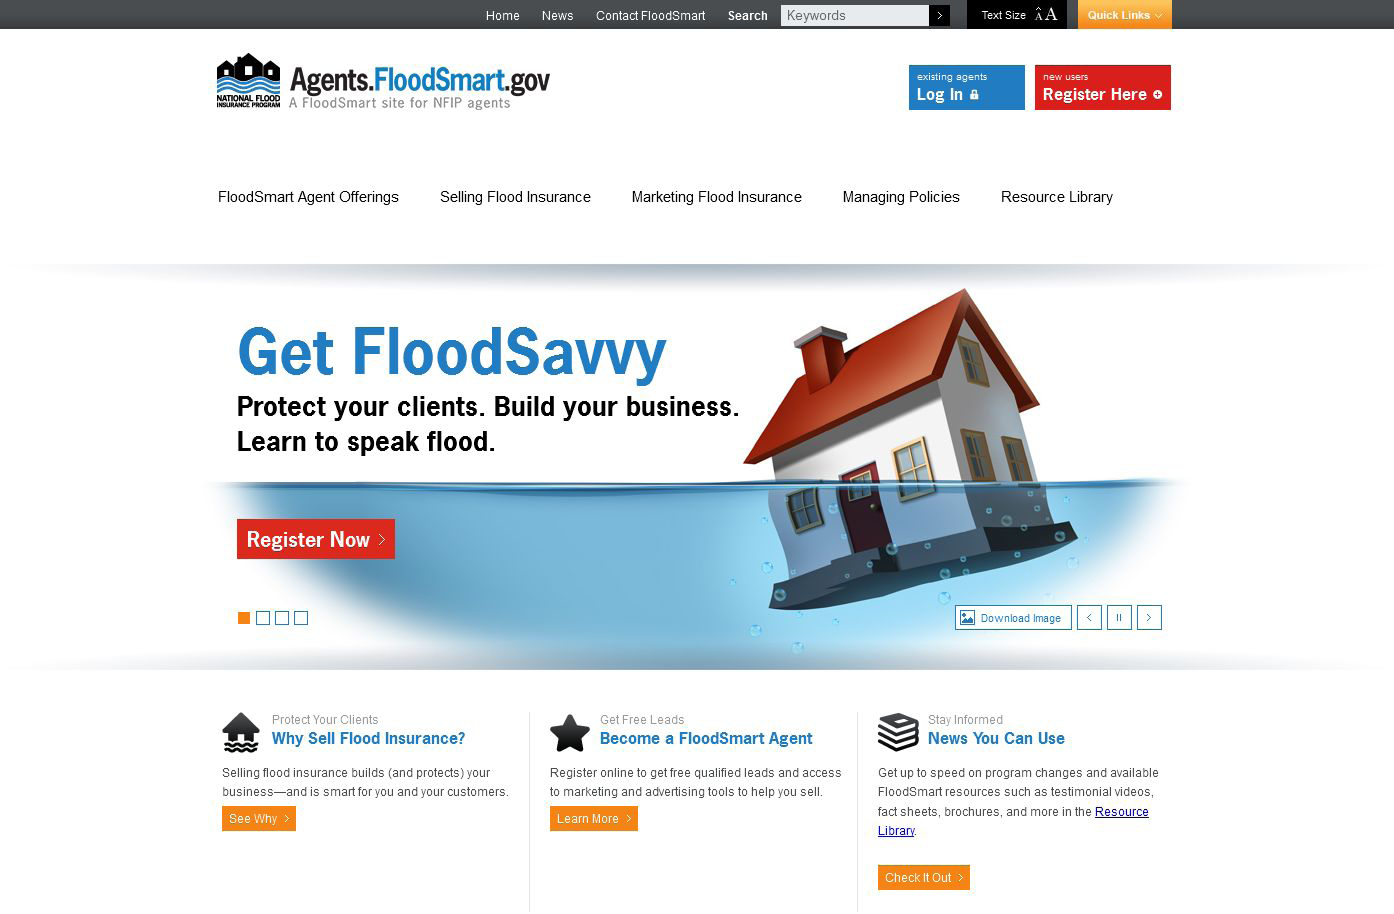 AGENTS.FLOODSMART.GOV HAS TOOLS TO SHOW YOU HOW TO SPEAK FLOOD. The FloodSmart.